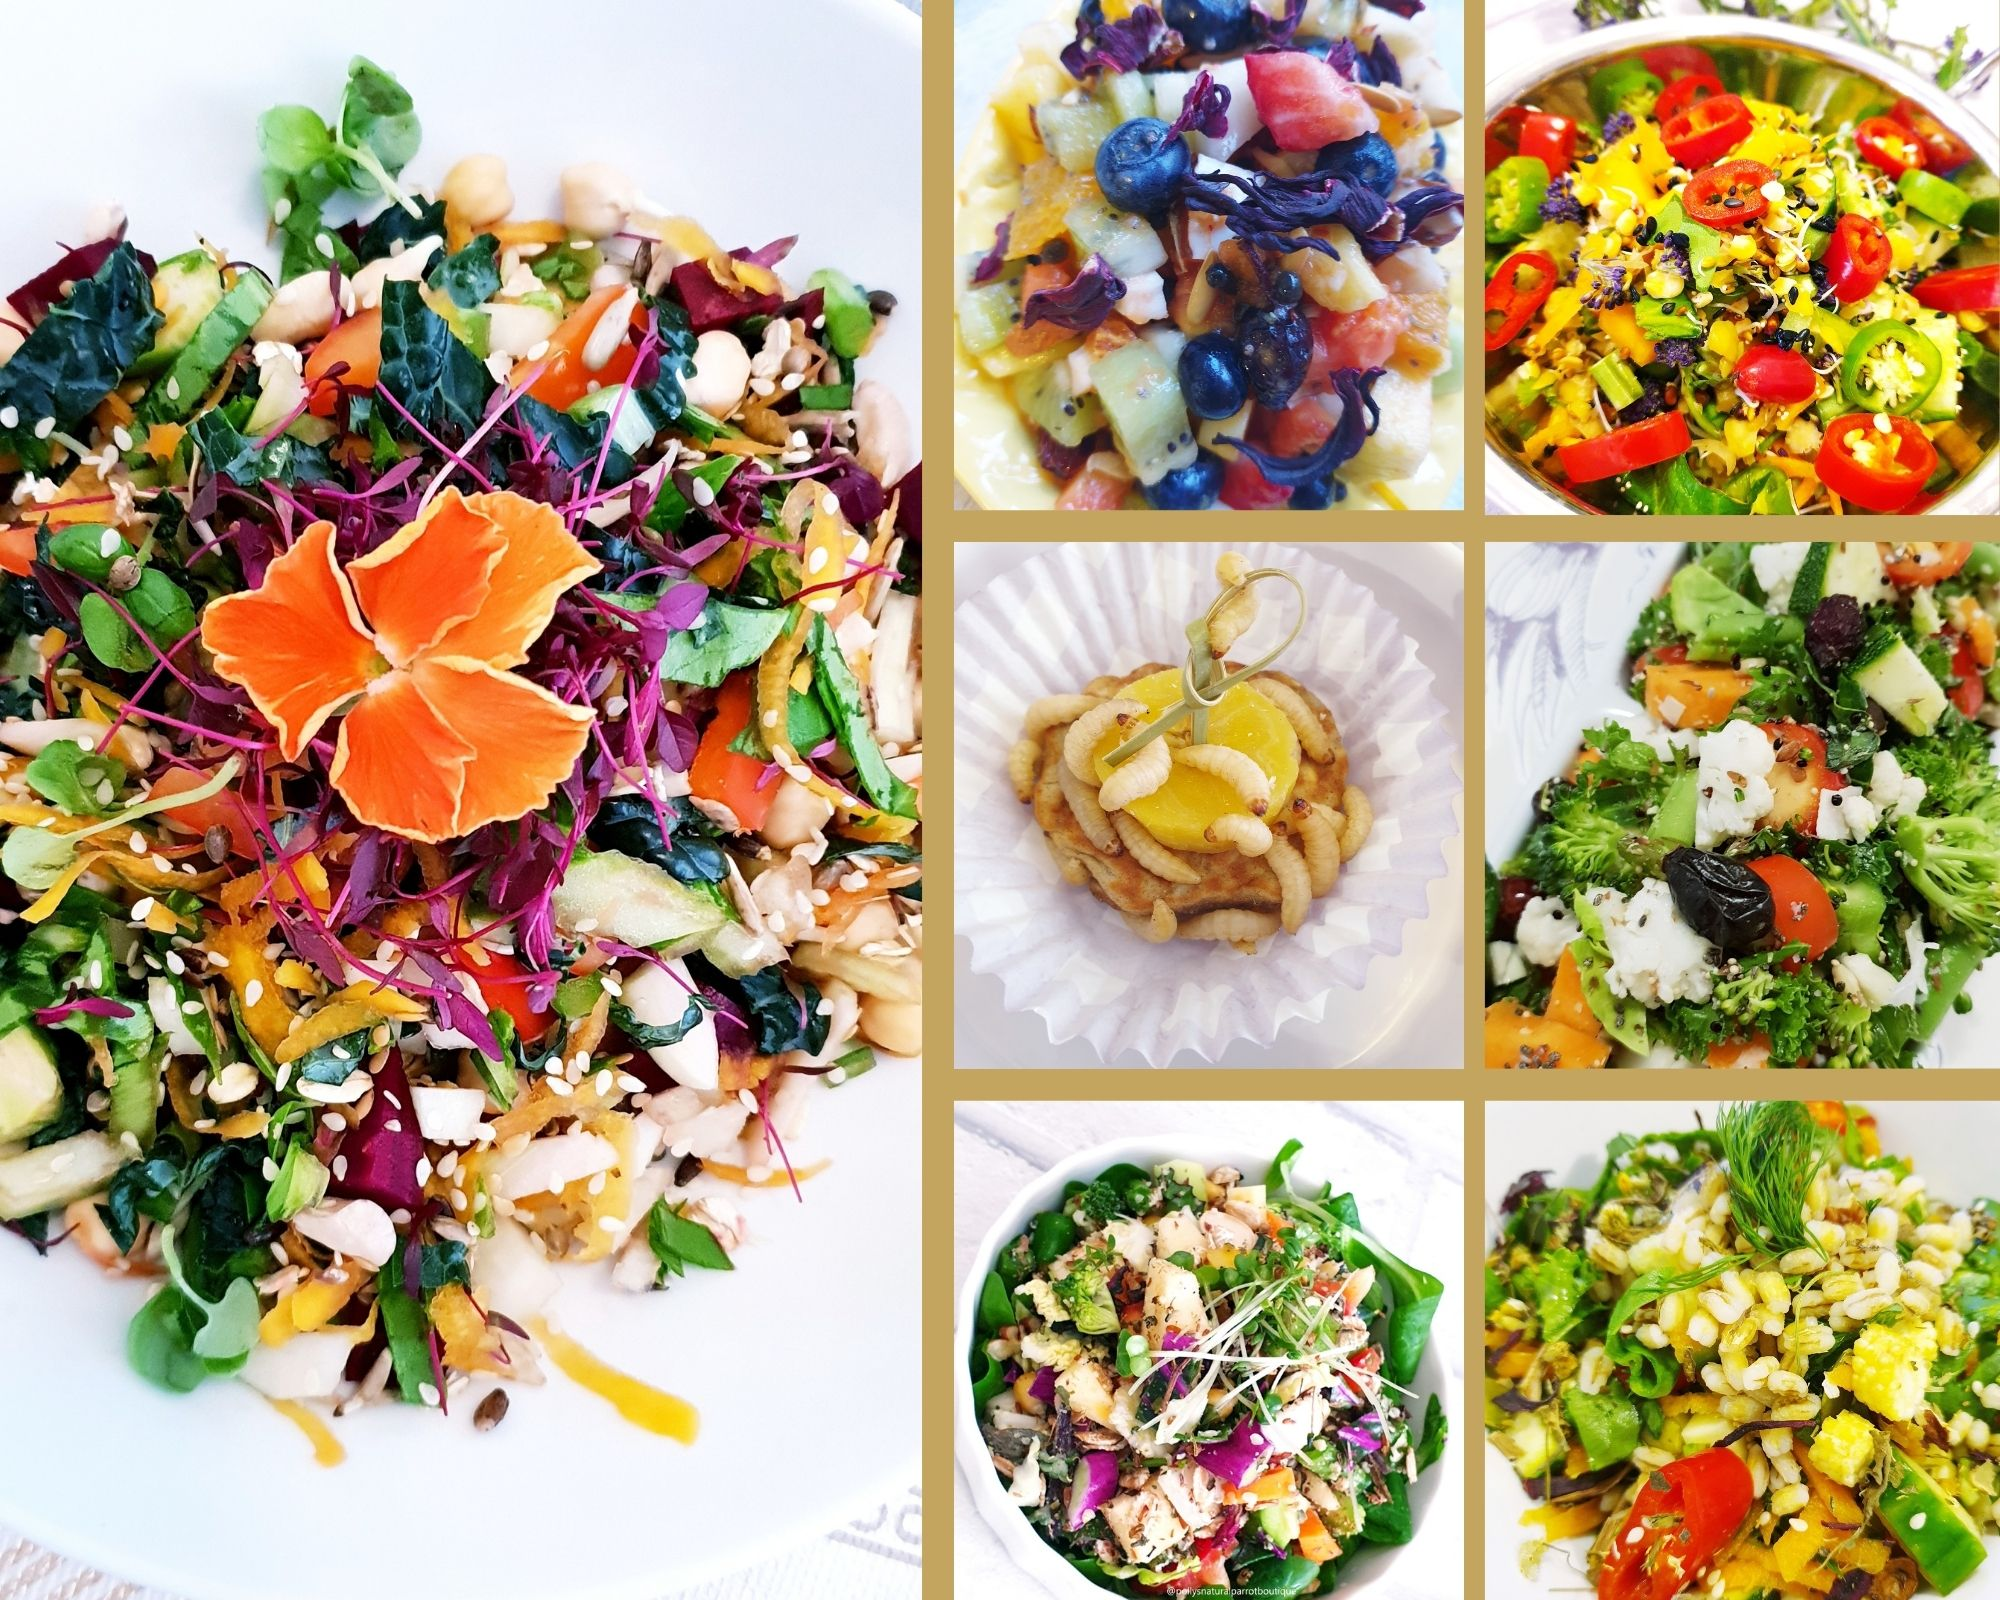 a-parrot-s-healthy-meal-planner-recipes.jpg